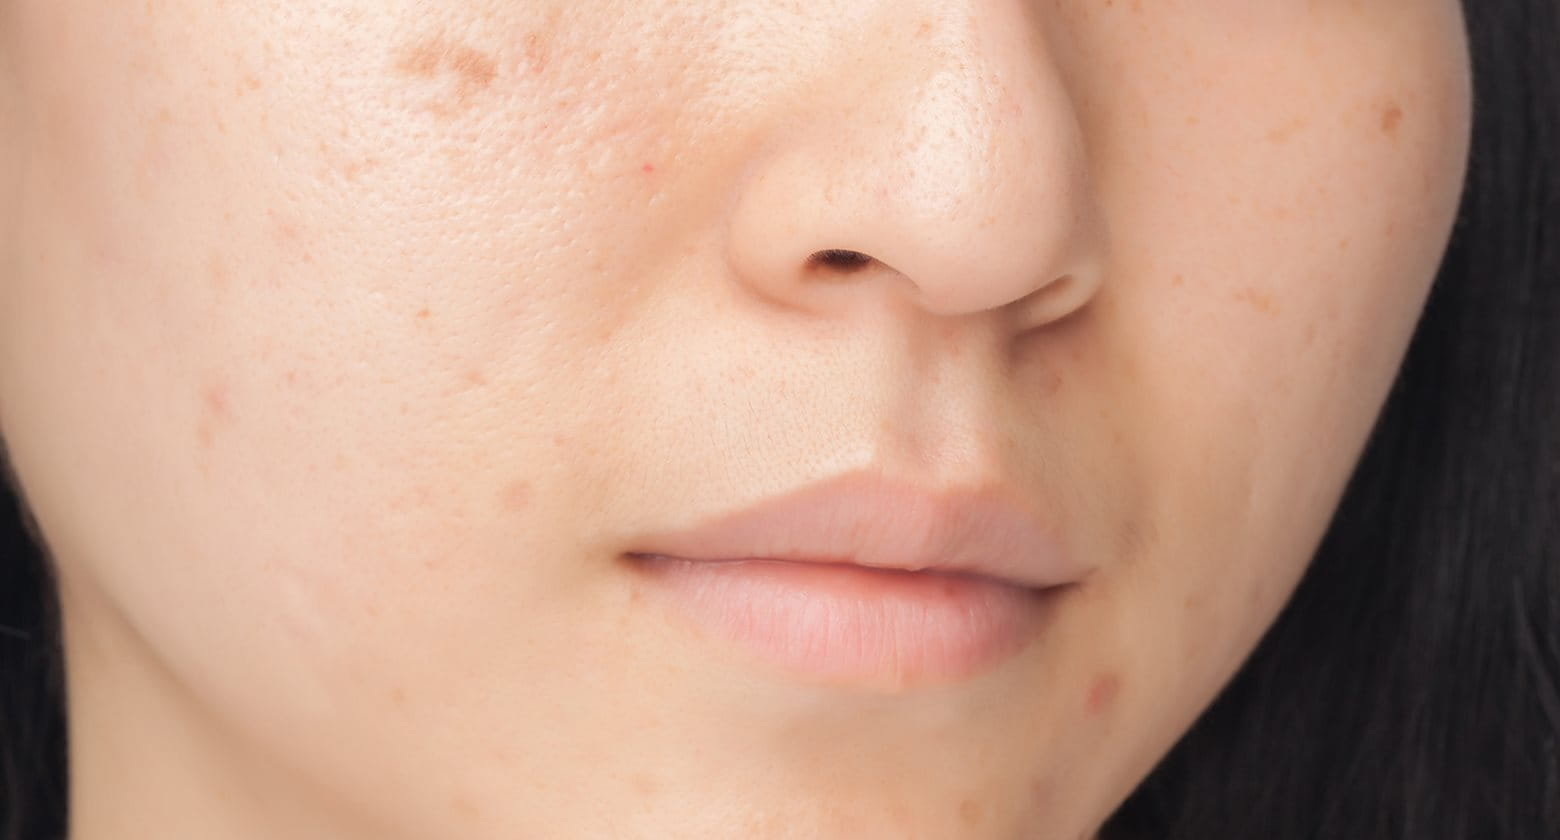 Acne and hyperpigmentation